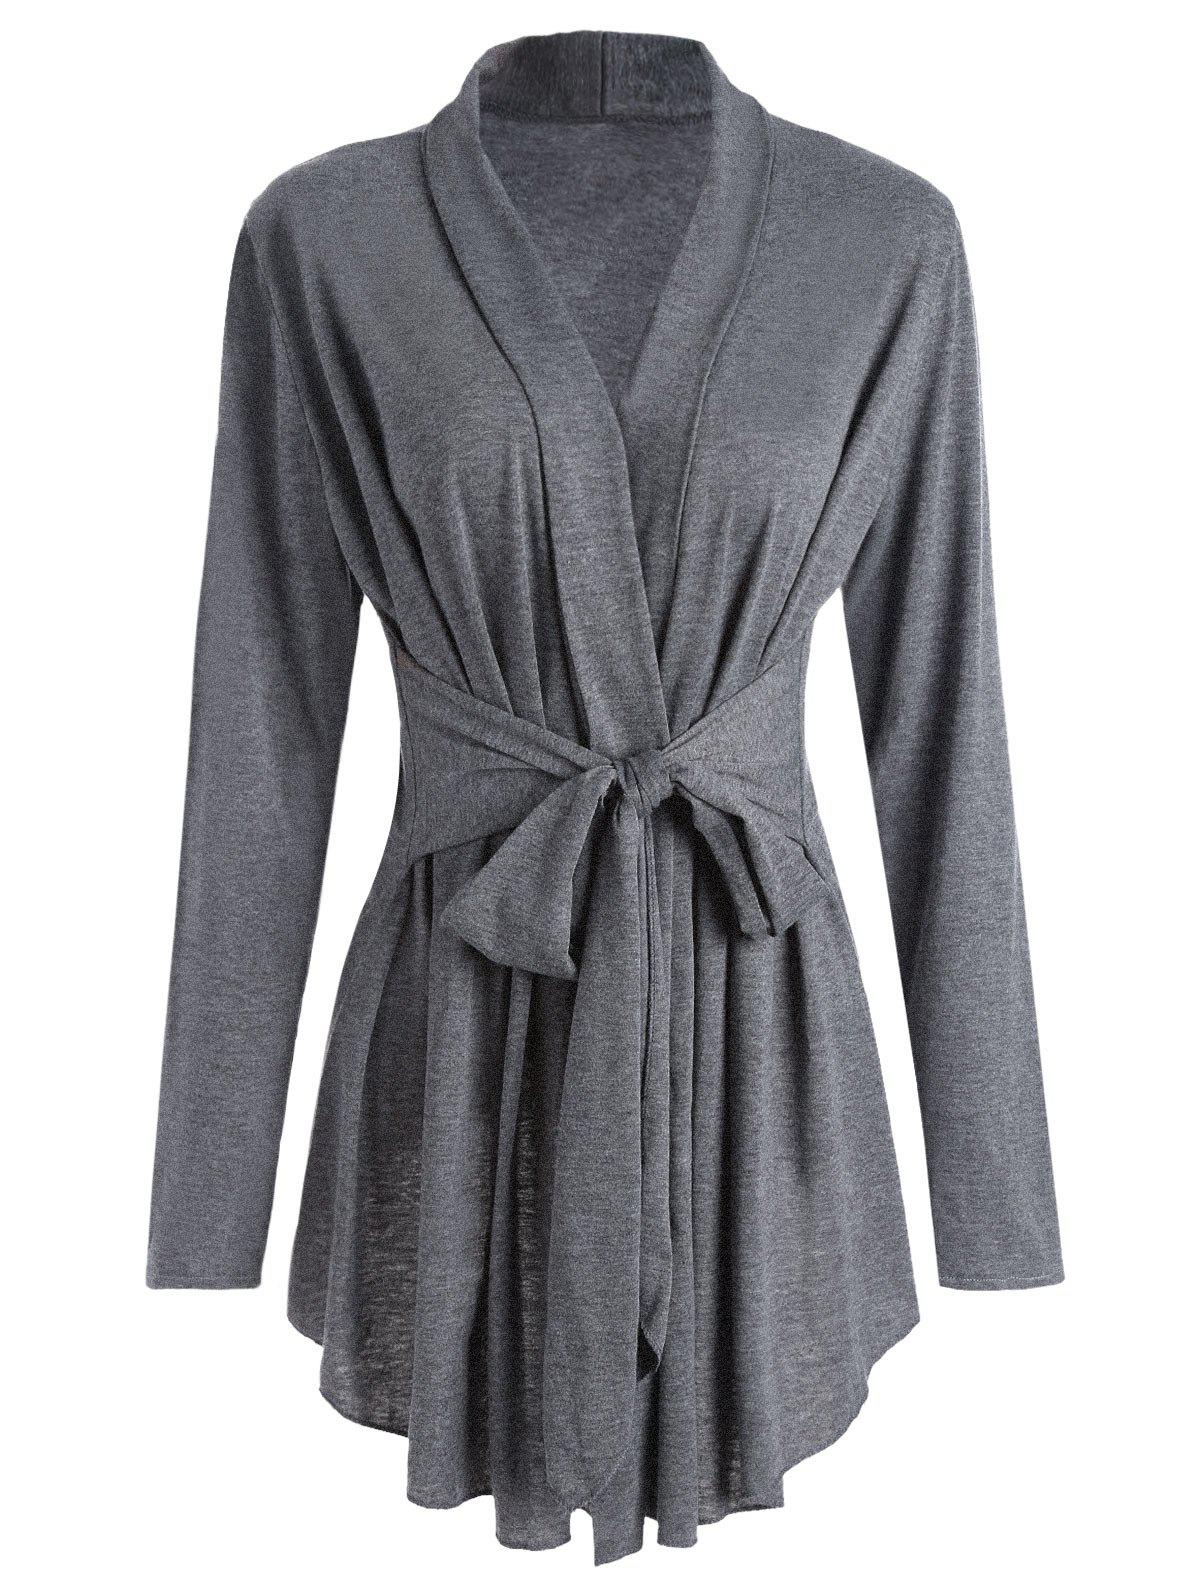 Shawl Collar Marled Wrap Cardigan - GRAY 2XL